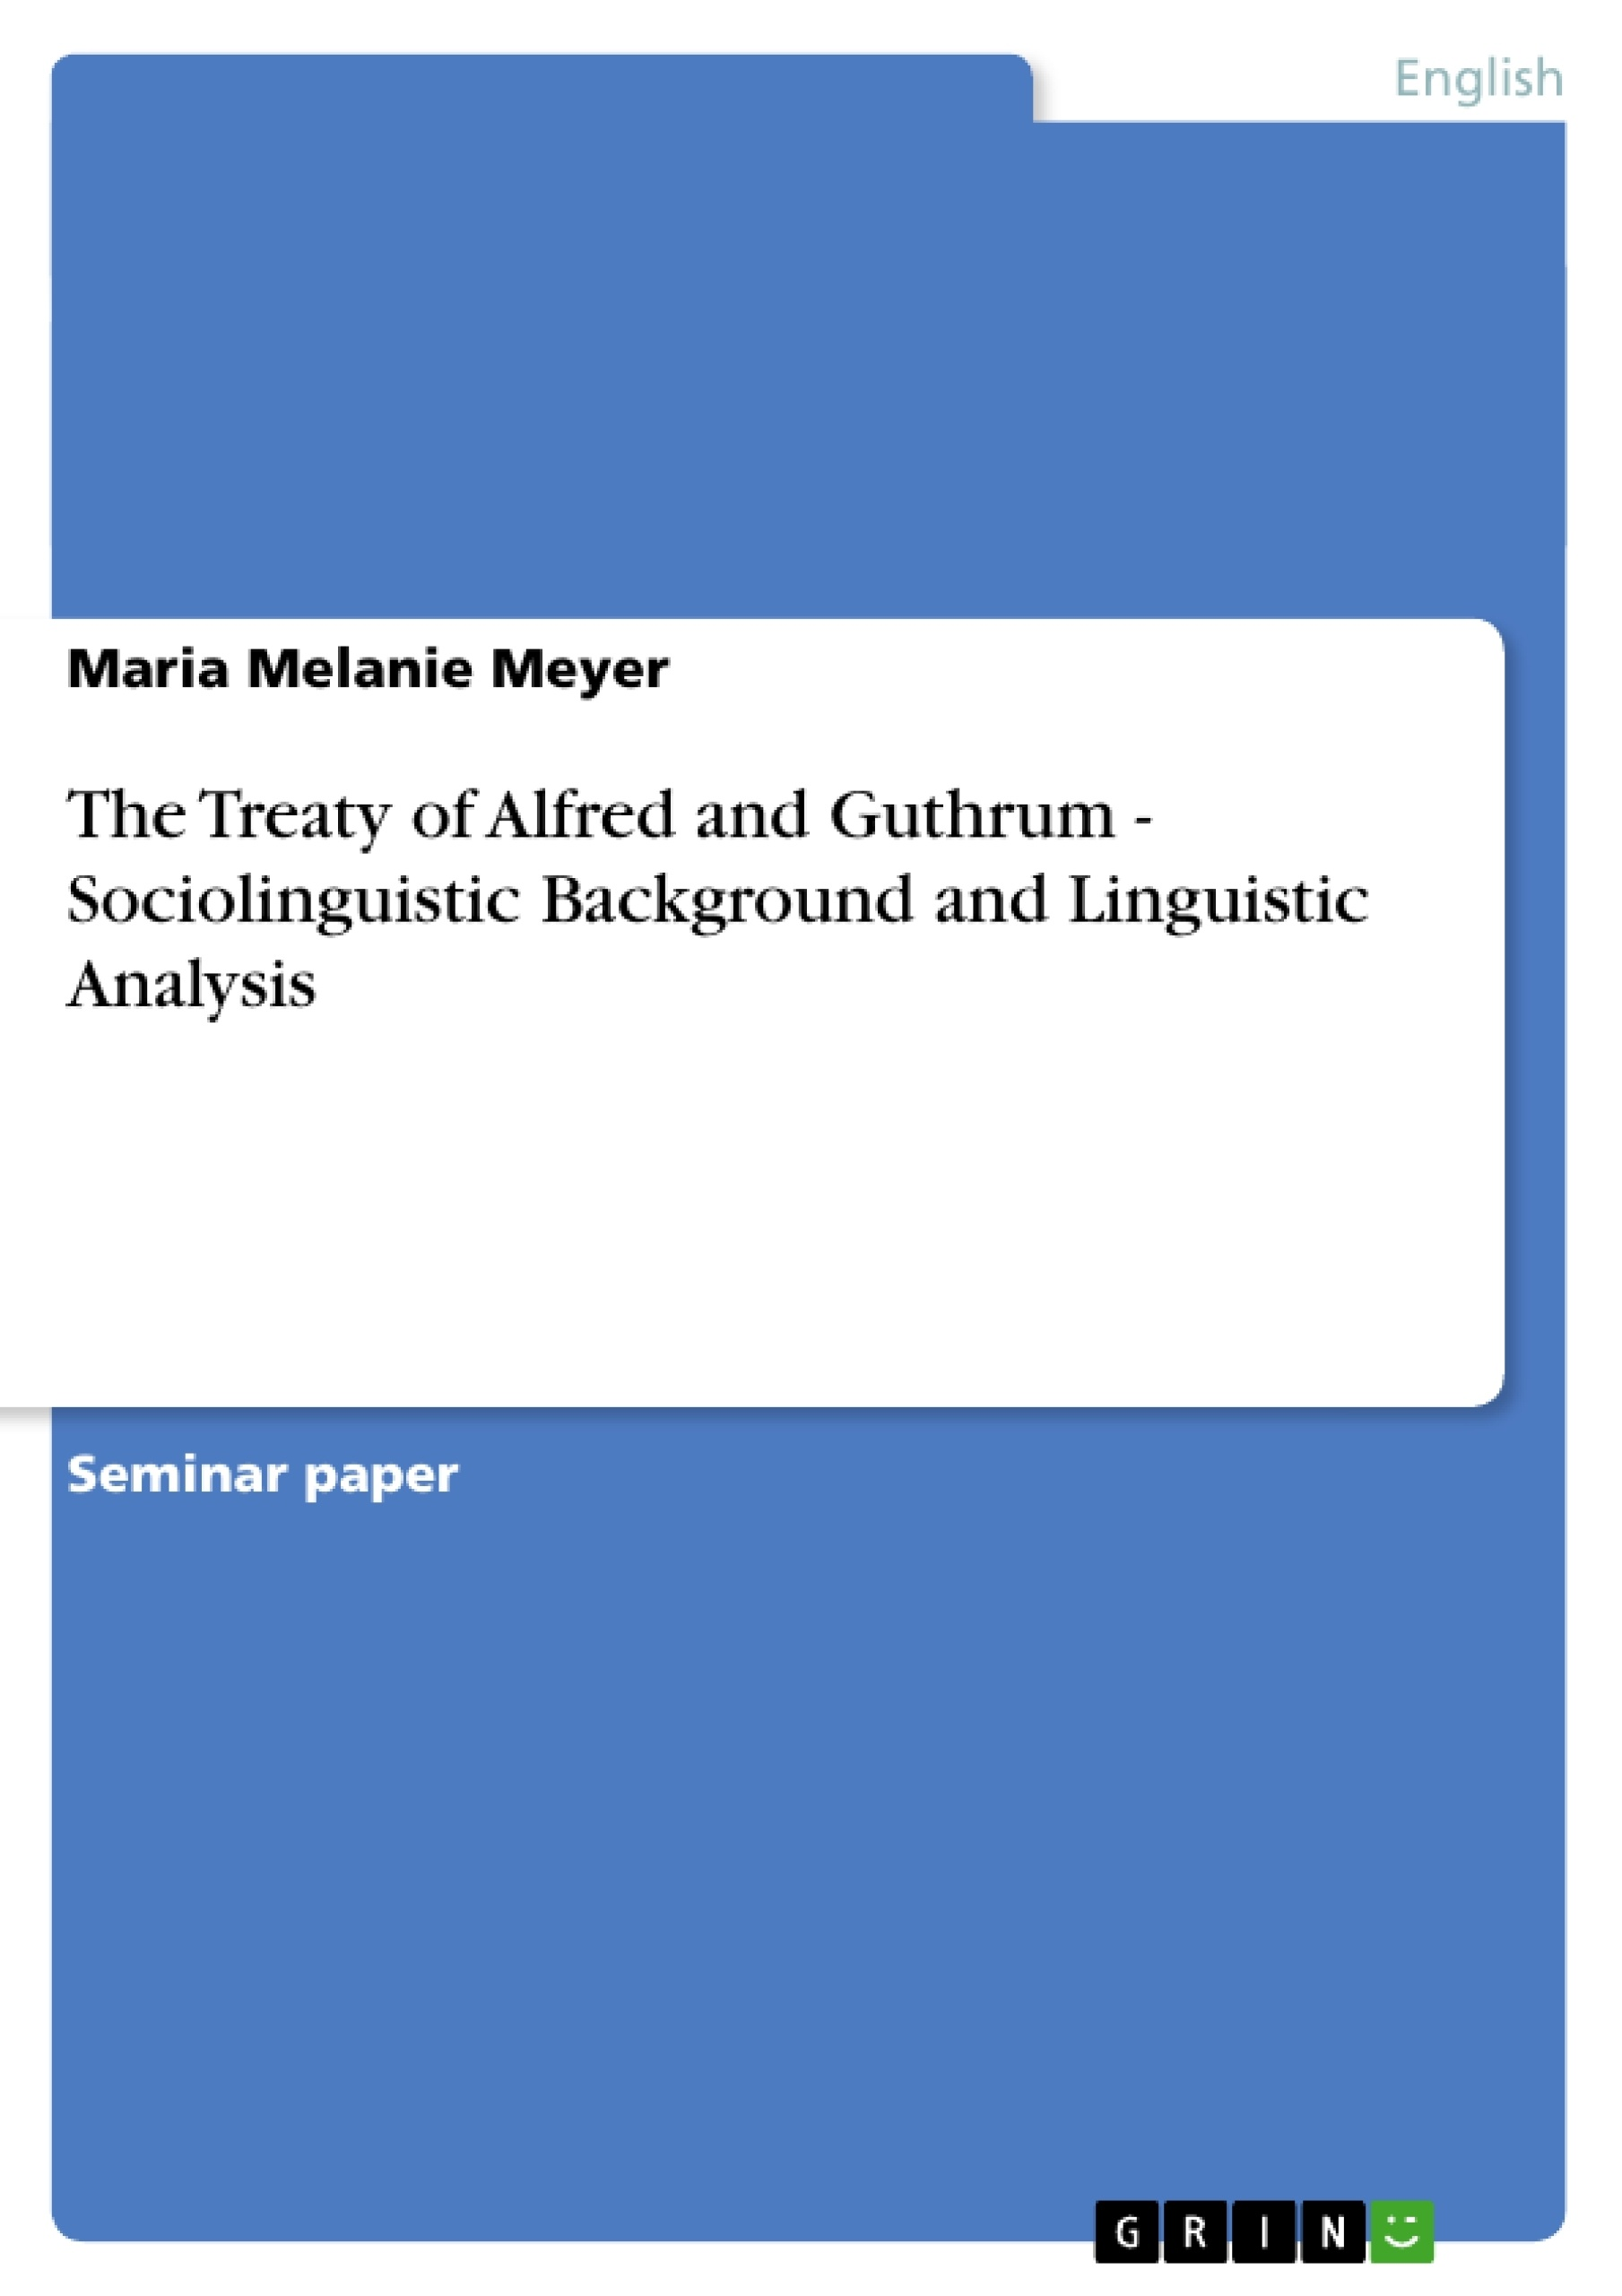 Title: The Treaty of Alfred and Guthrum - Sociolinguistic Background and Linguistic Analysis